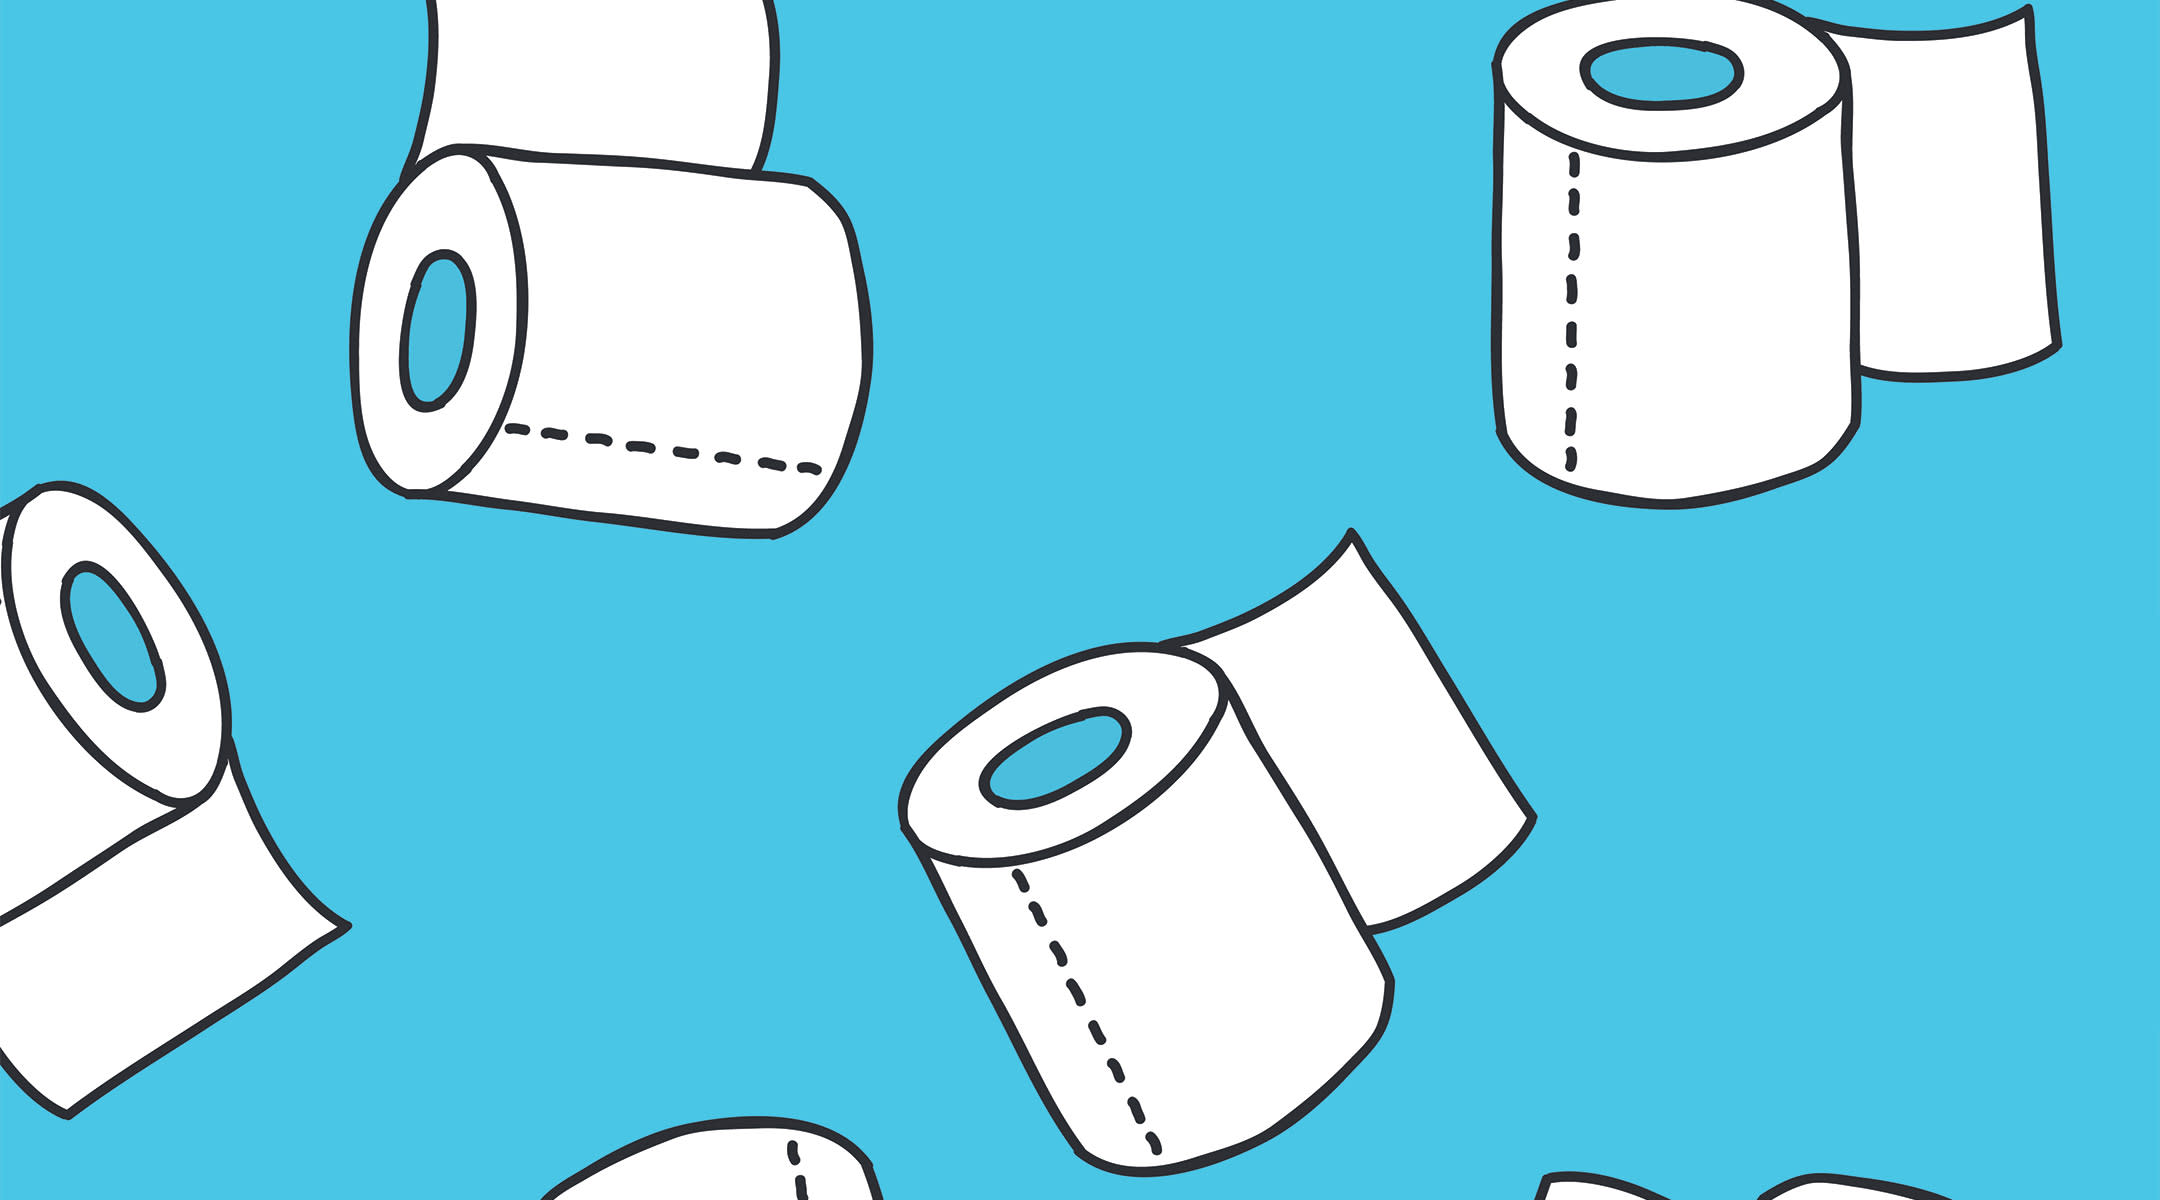 several rolls of toilet paper